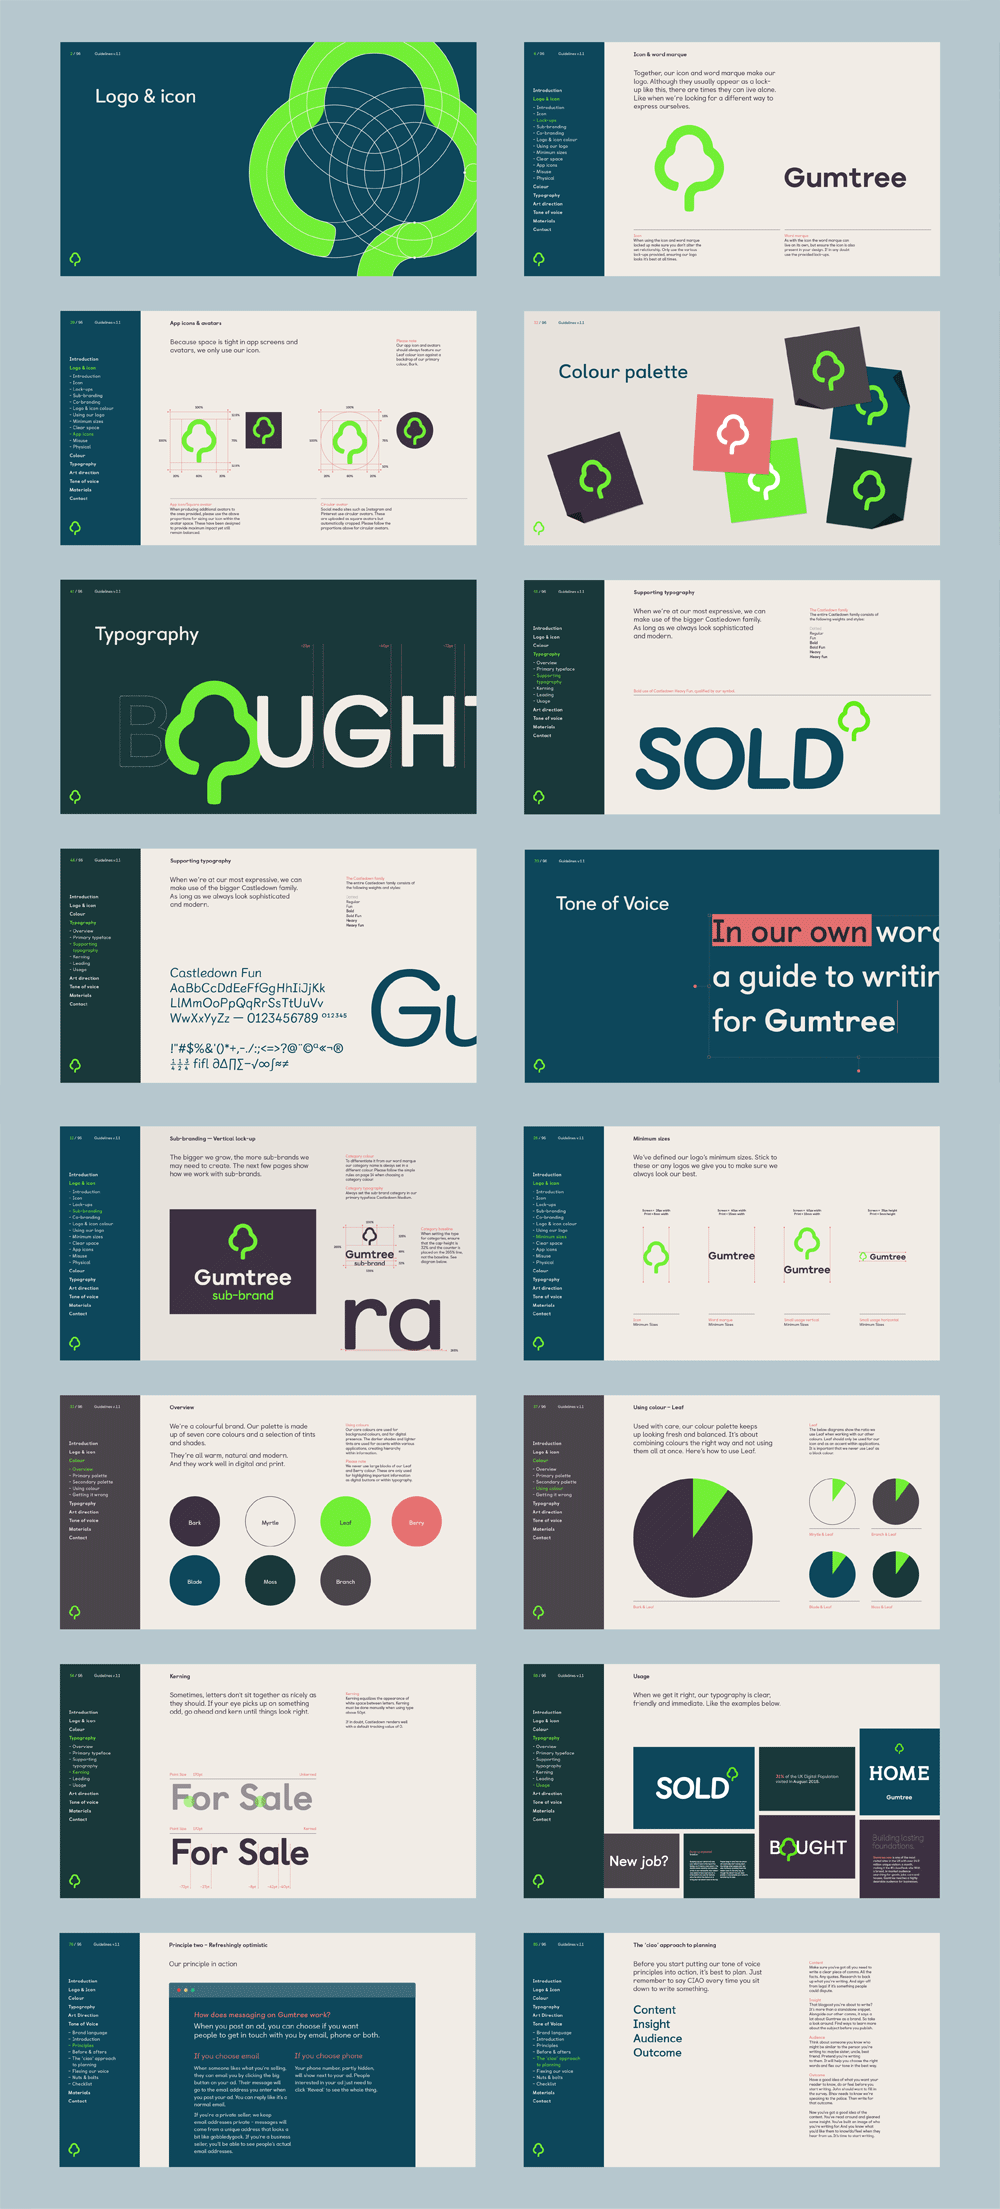 Brand identity guideline pages brand new new logo and identity for brand identity guideline pages brand new new logo and identity for gumtree by koto gumiabroncs Images